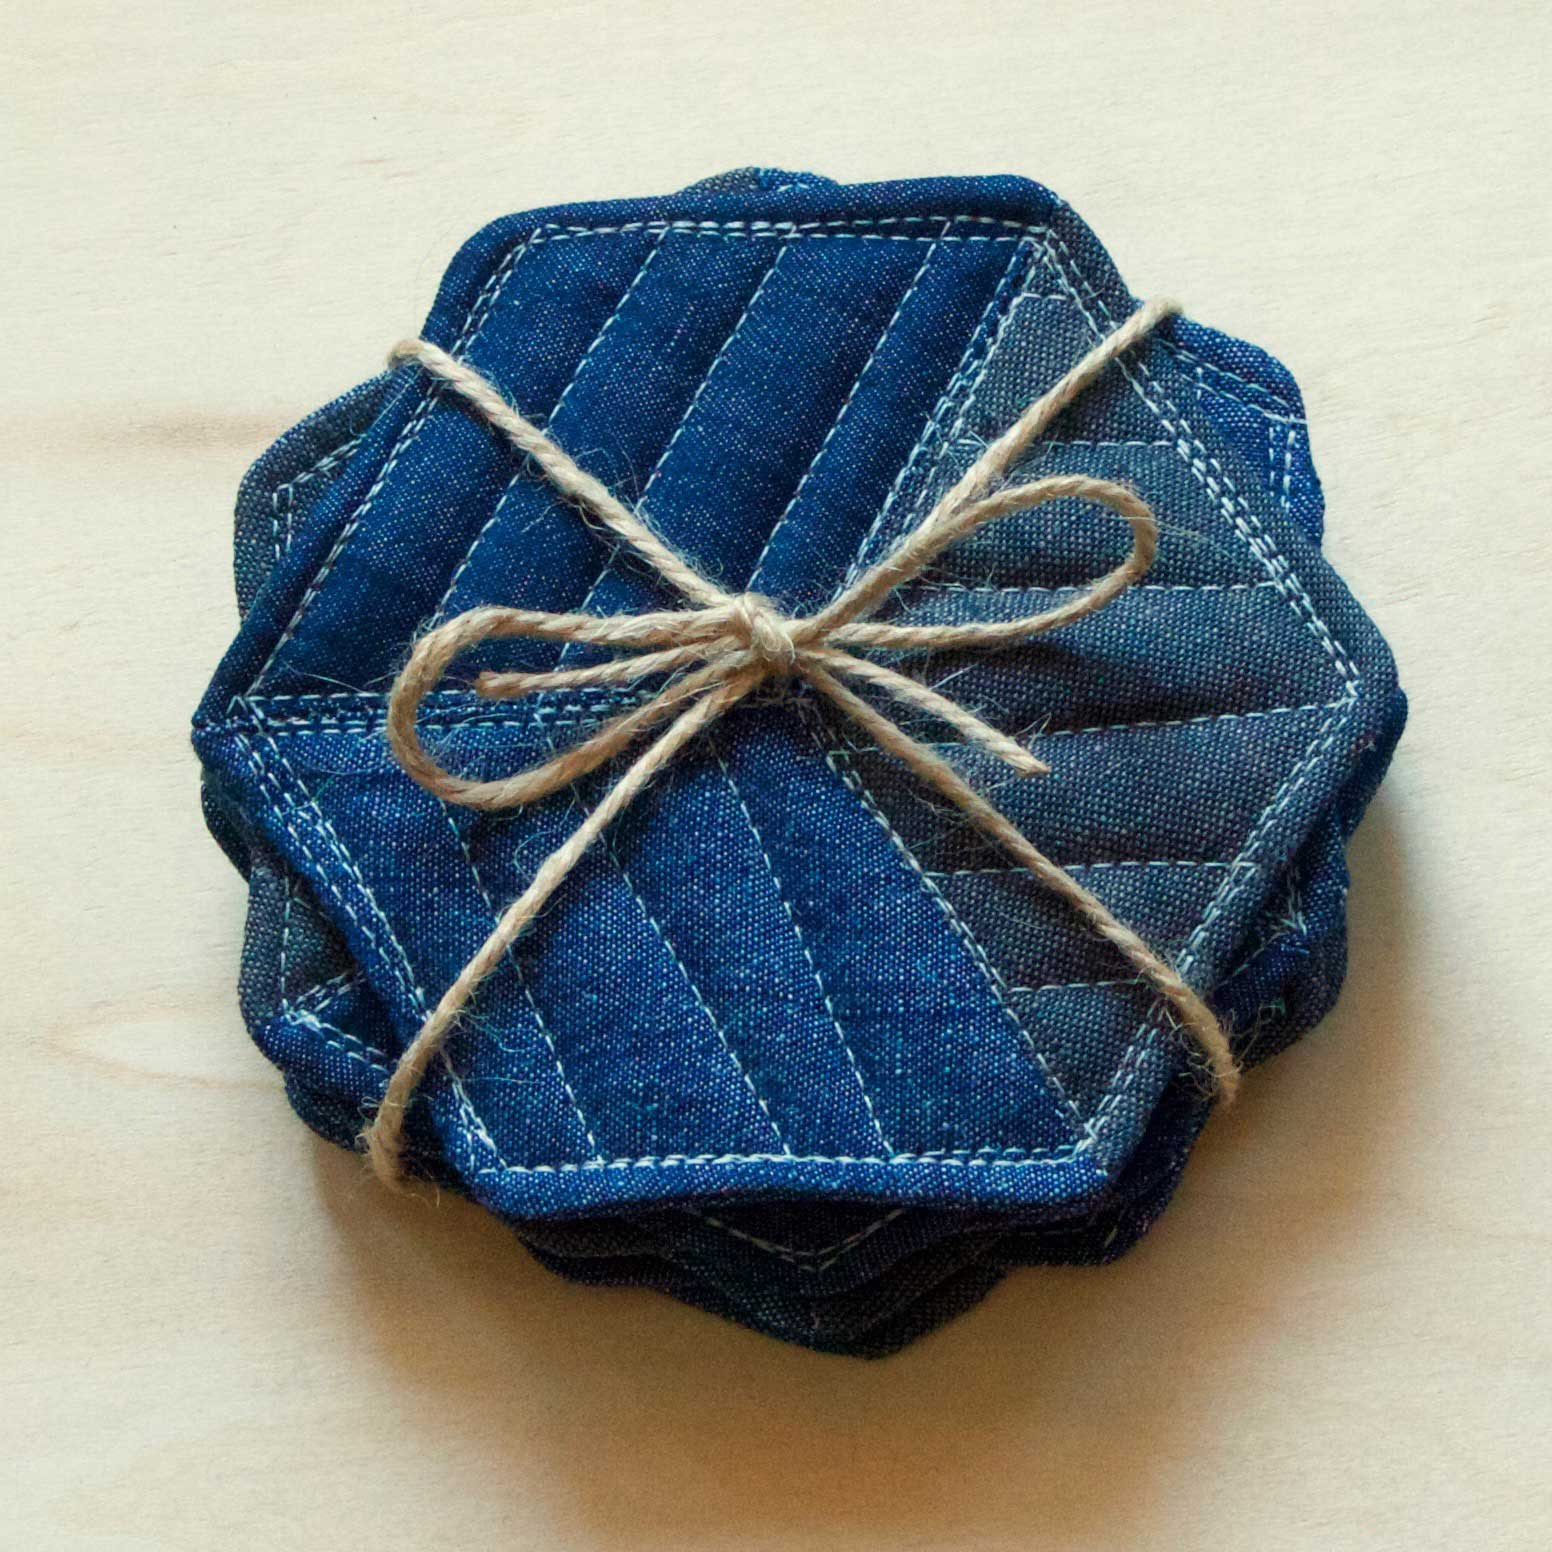 Quilted coasters make a great gift, tutorial by Thread & Whisk